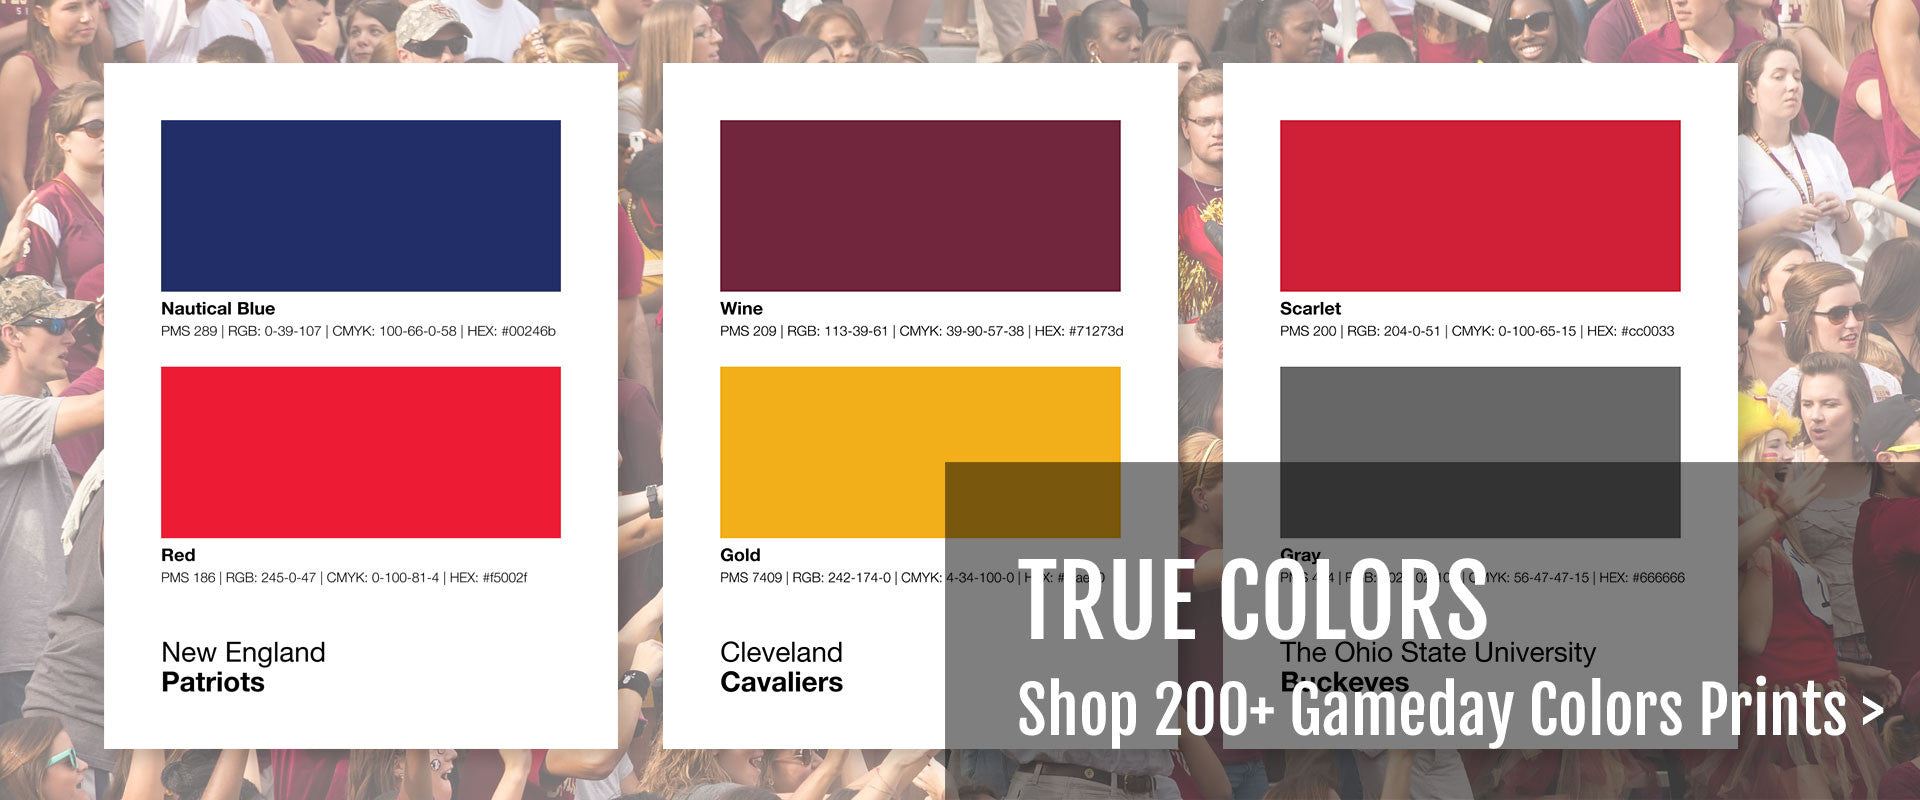 Shop Gameday Colors Prints